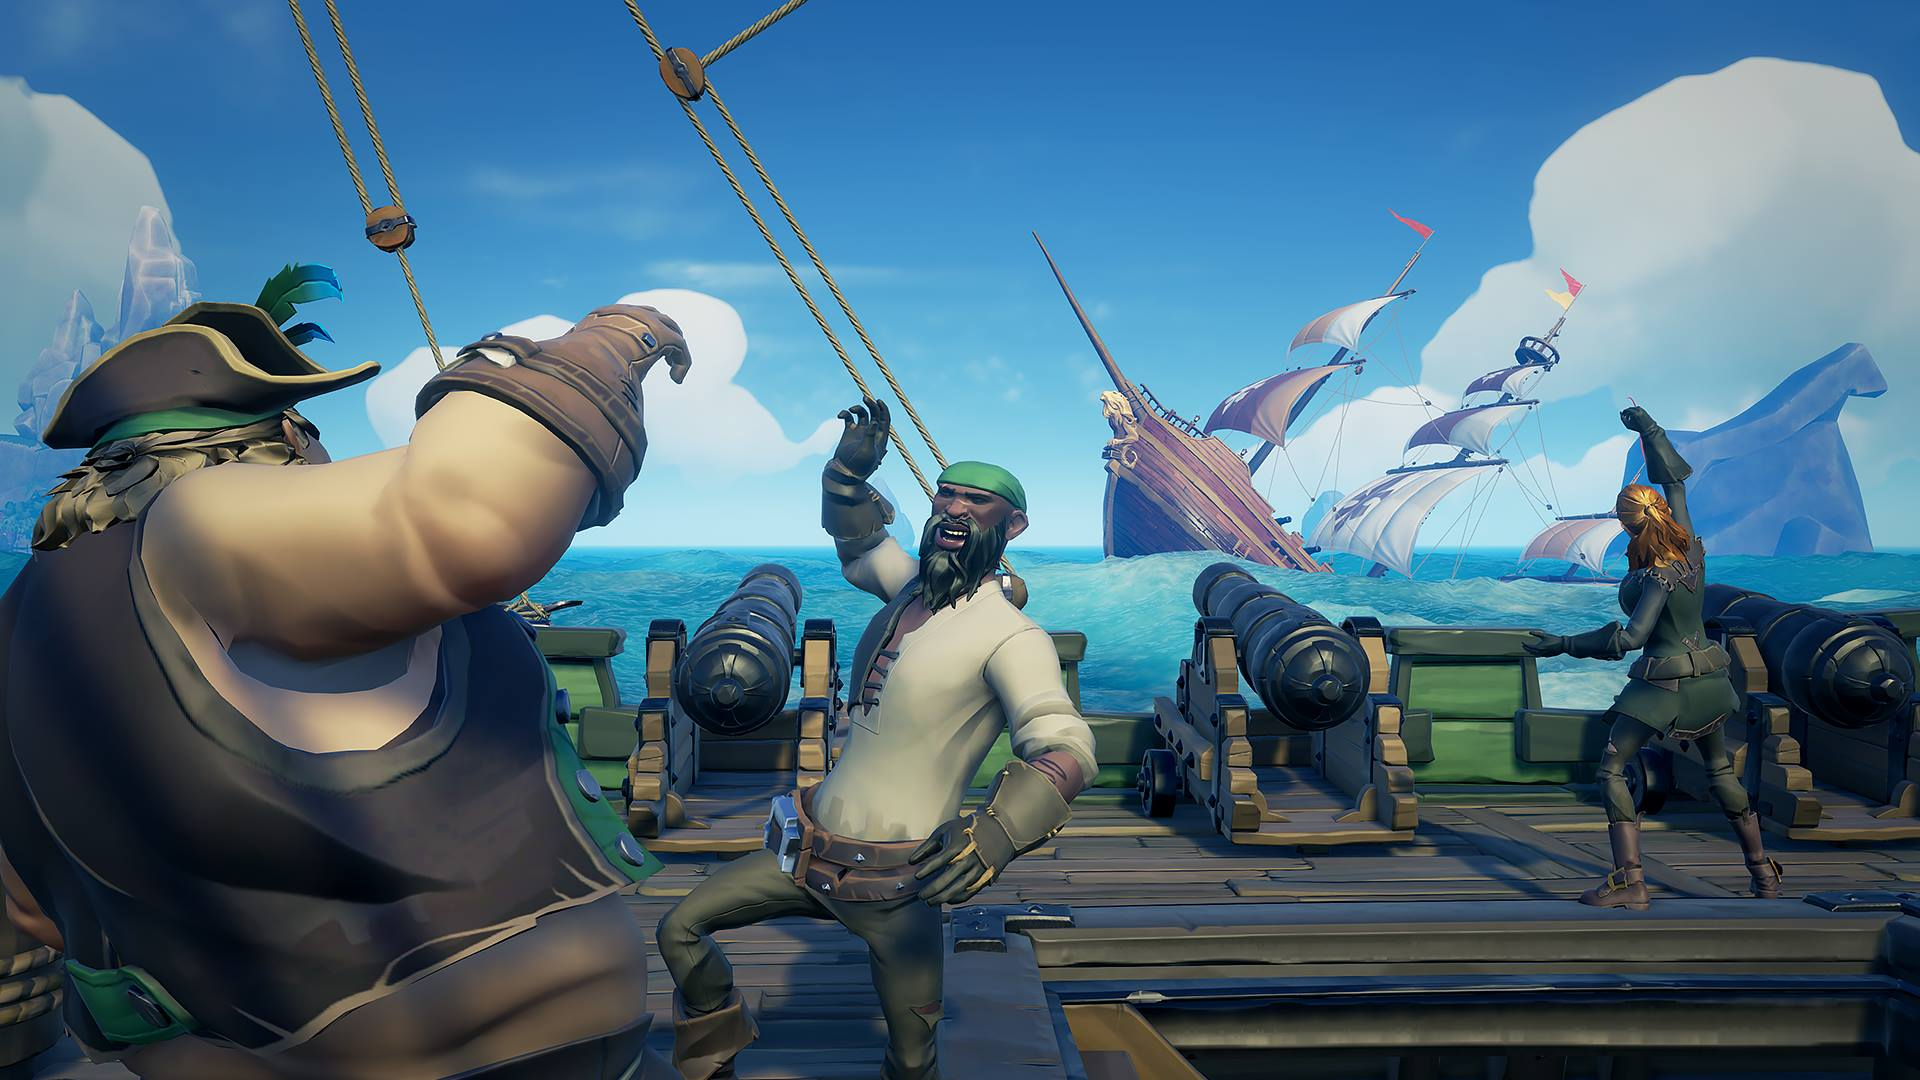 Sea of Thieves Update 1 0 8 Xbox/PC adds New Player Settings